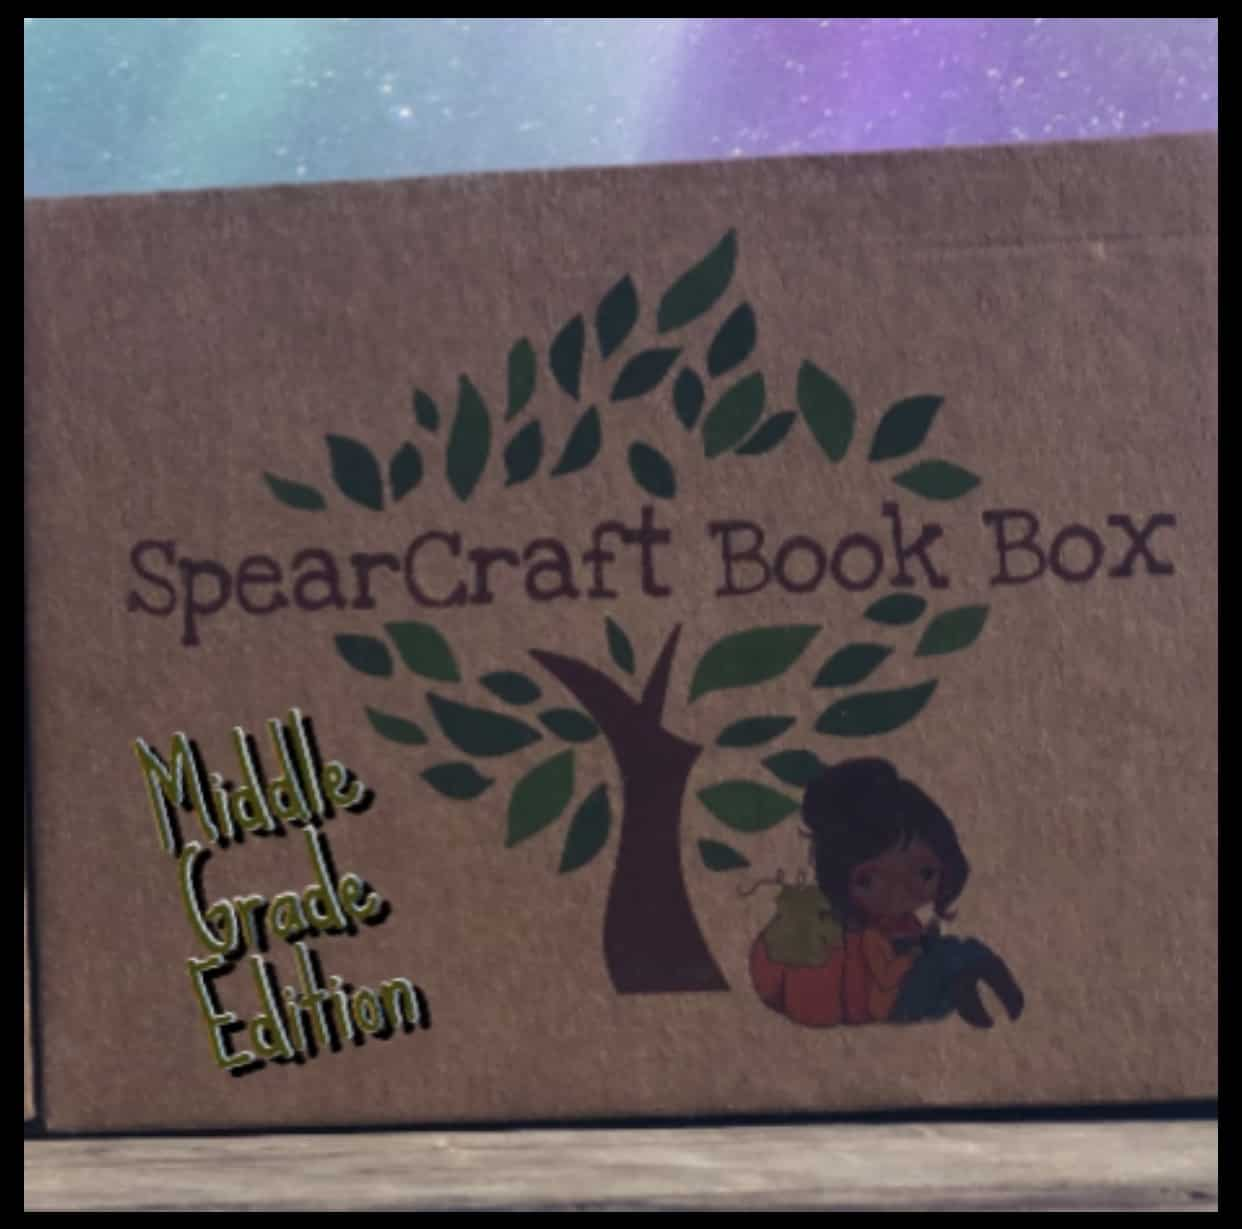 SpearCraft Book Box Middle Grade Edition